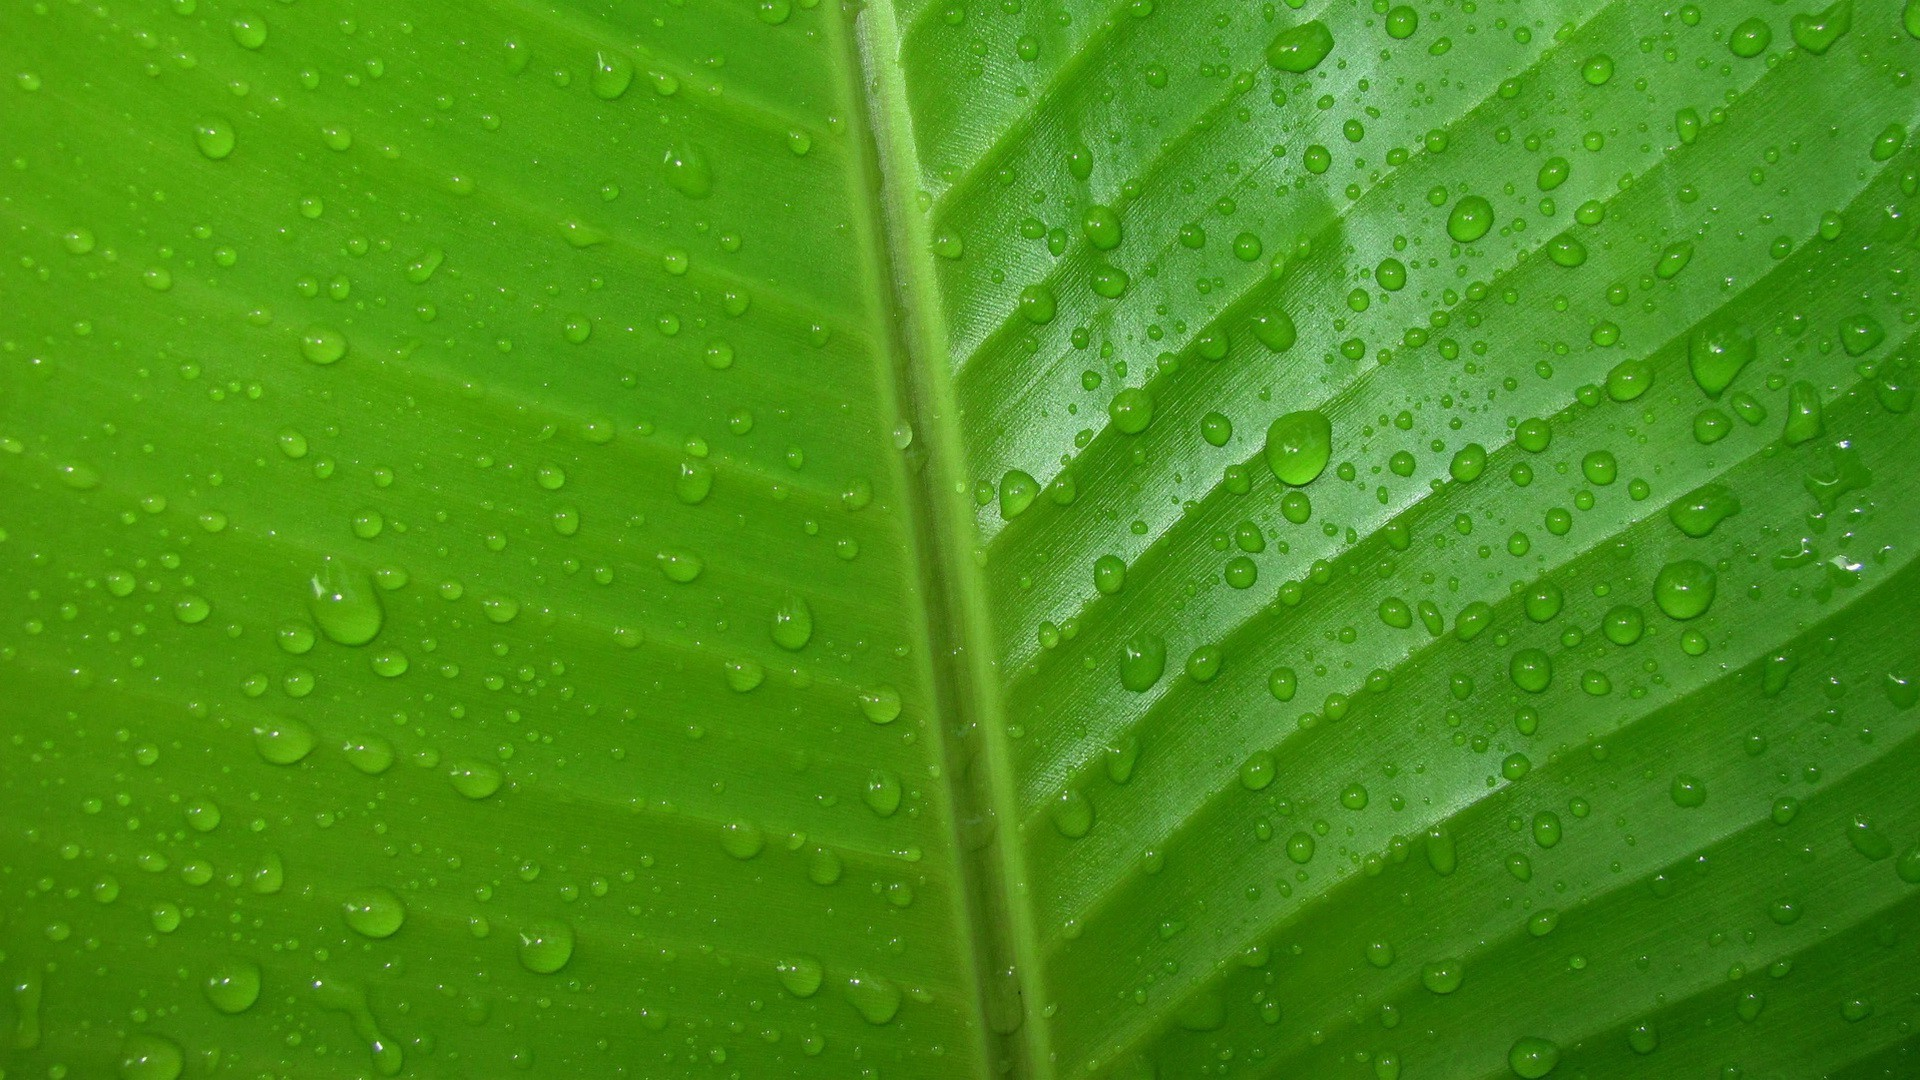 Green Leaves Wallpaper (66+ Images